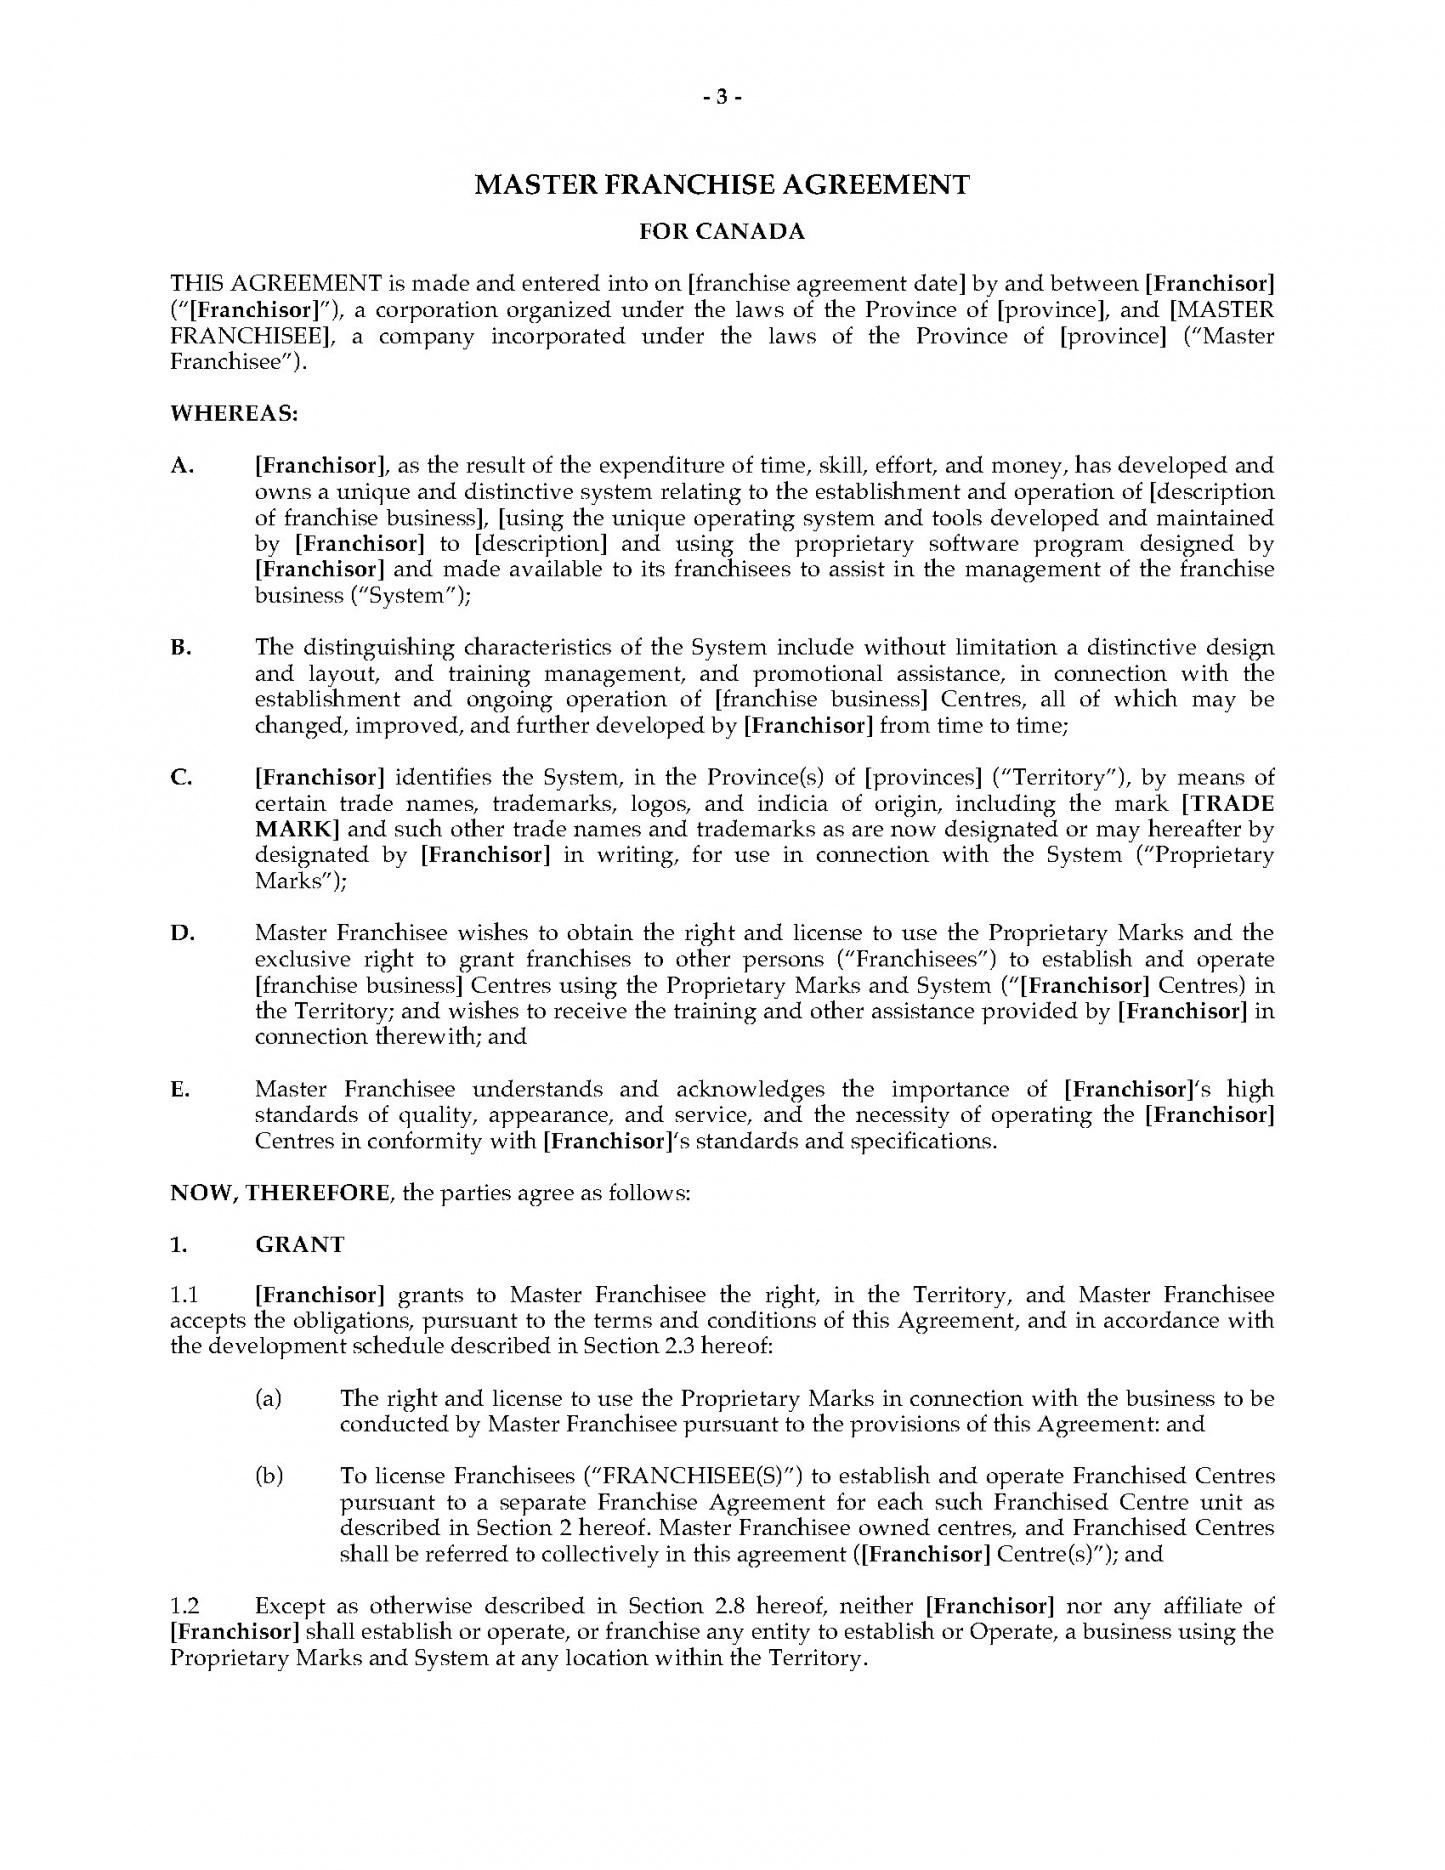 here the canada master franchise agreement  legal forms and business franchise agreement sample canada